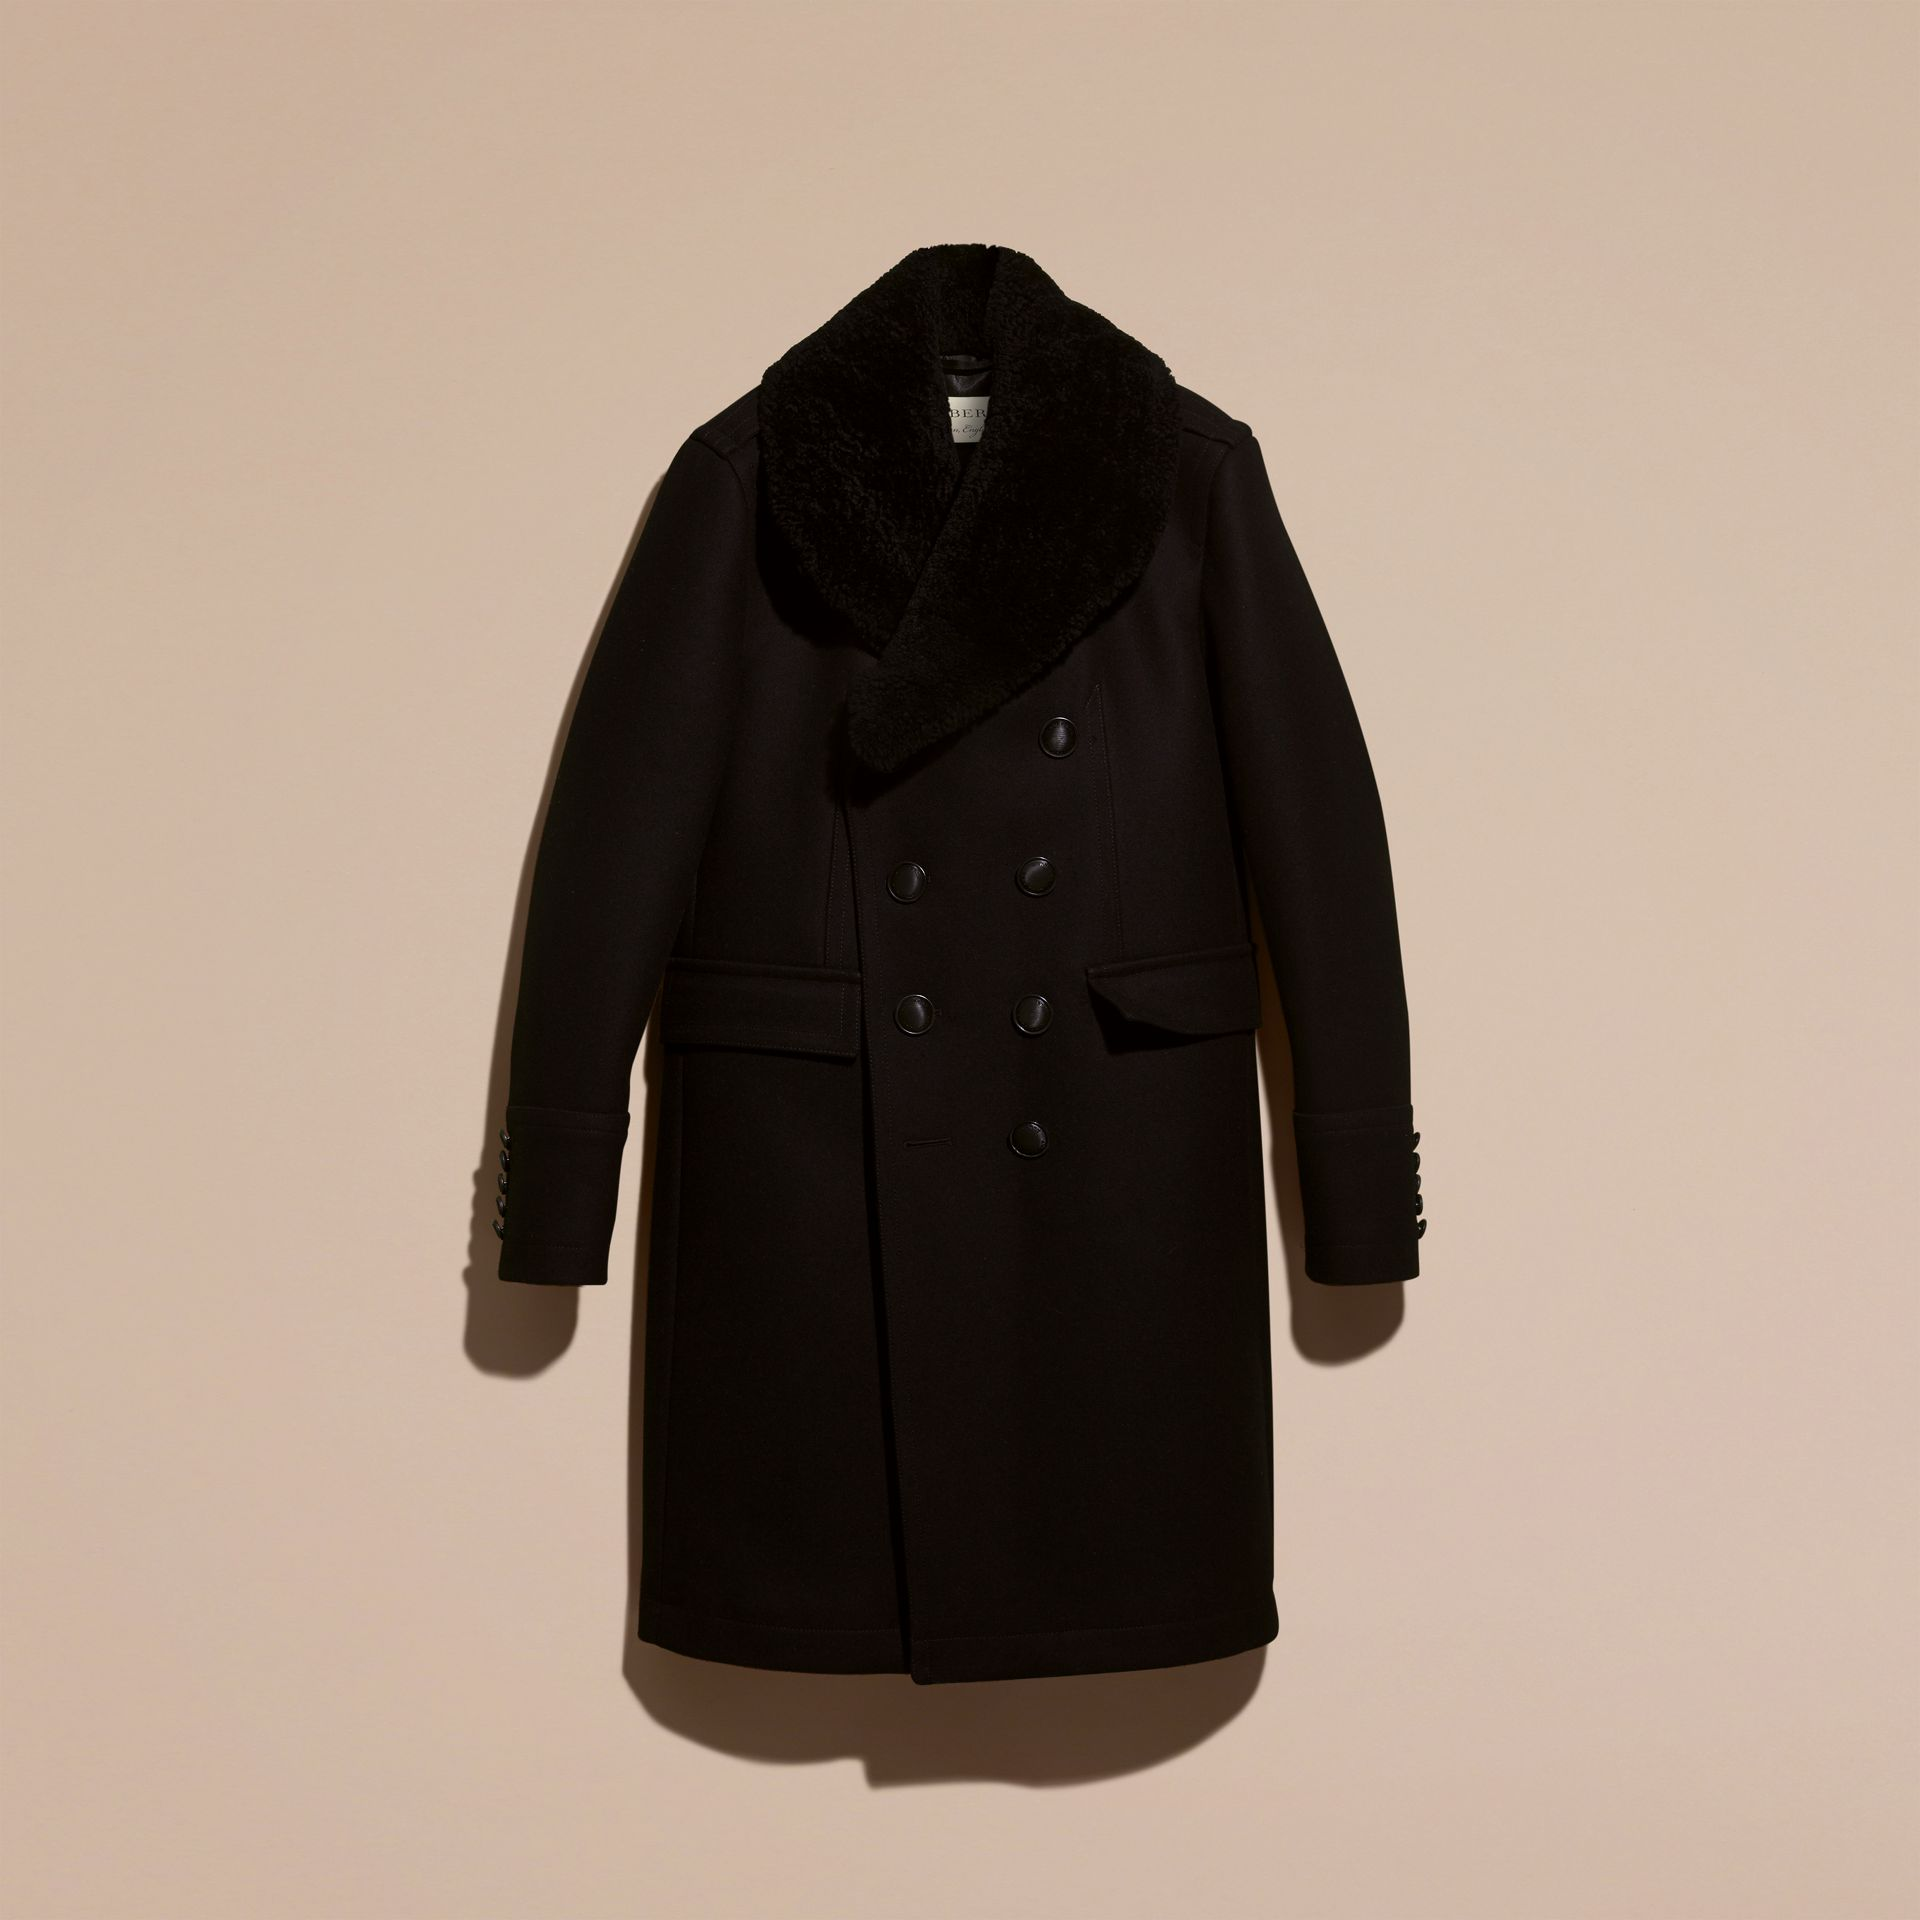 Black Technical Wool Greatcoat with Detachable Shearling Collar - gallery image 4